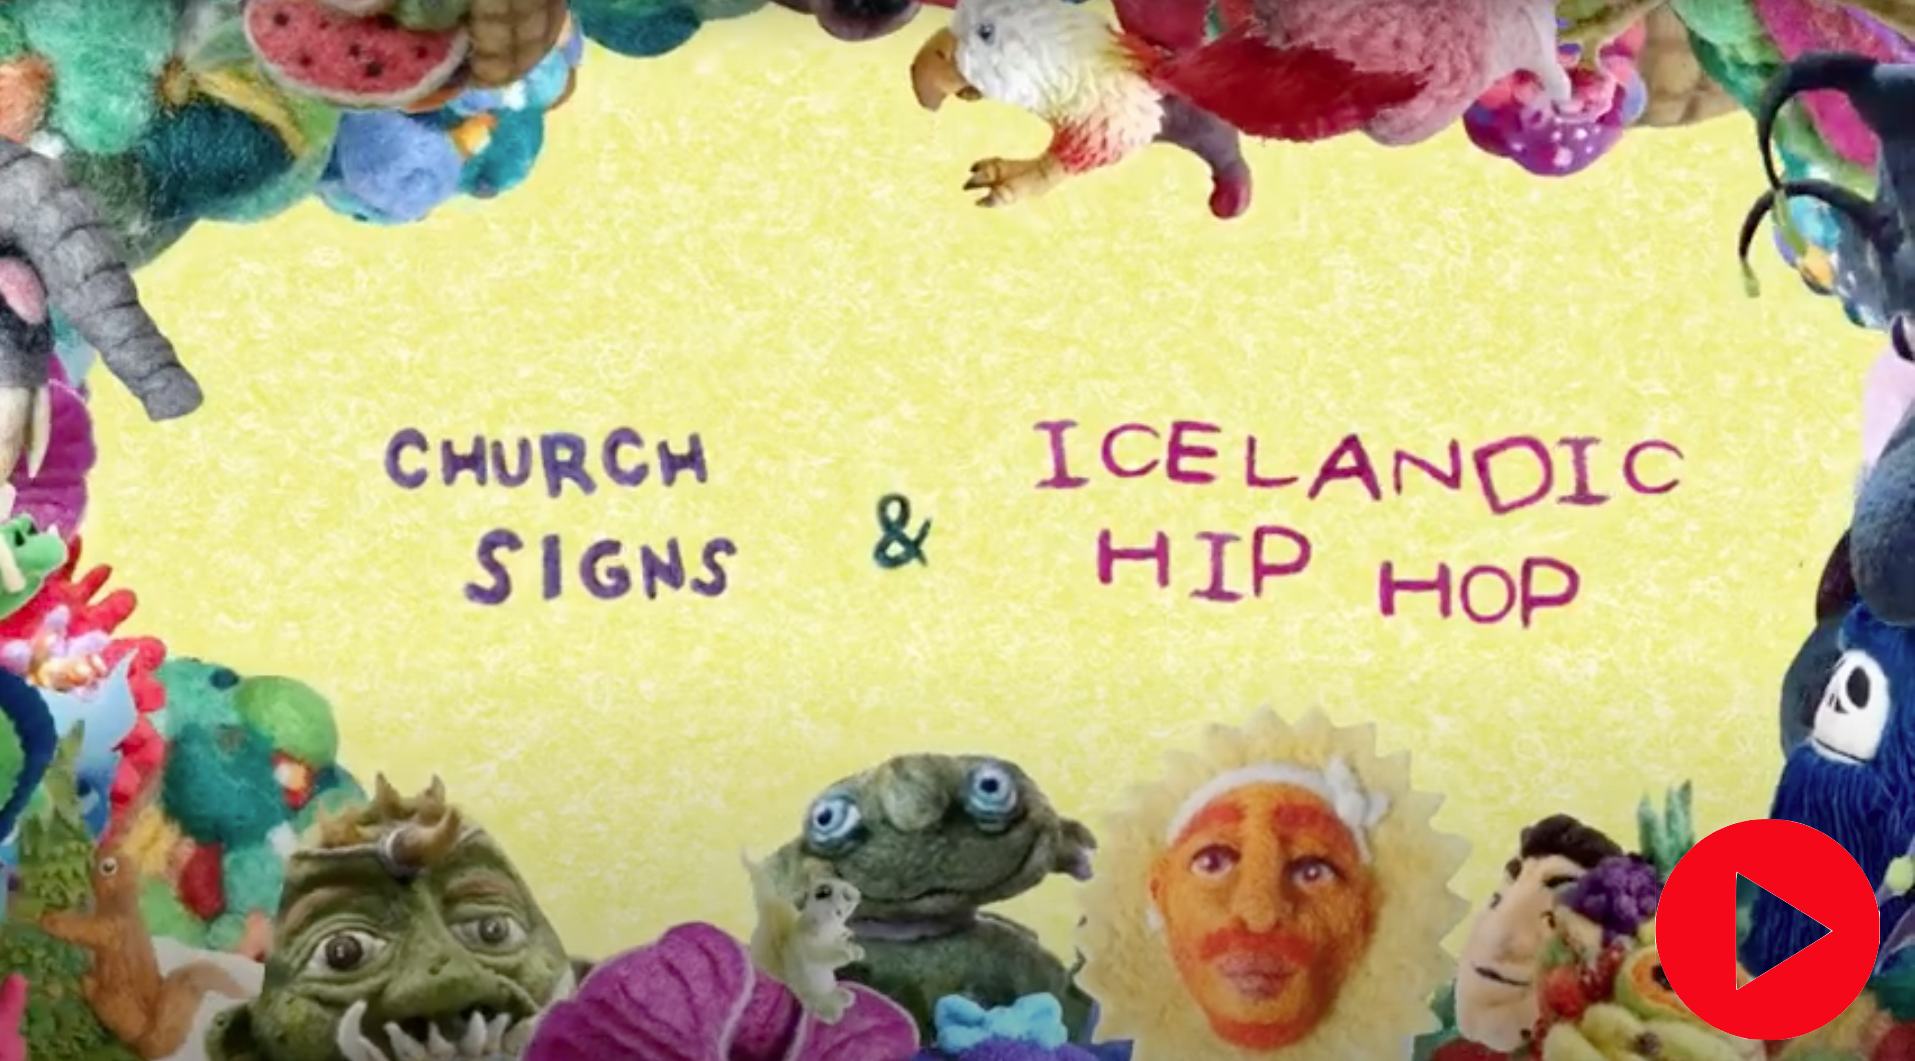 Watch Mixed Taste Church Signs & Icelandic Hip Hop